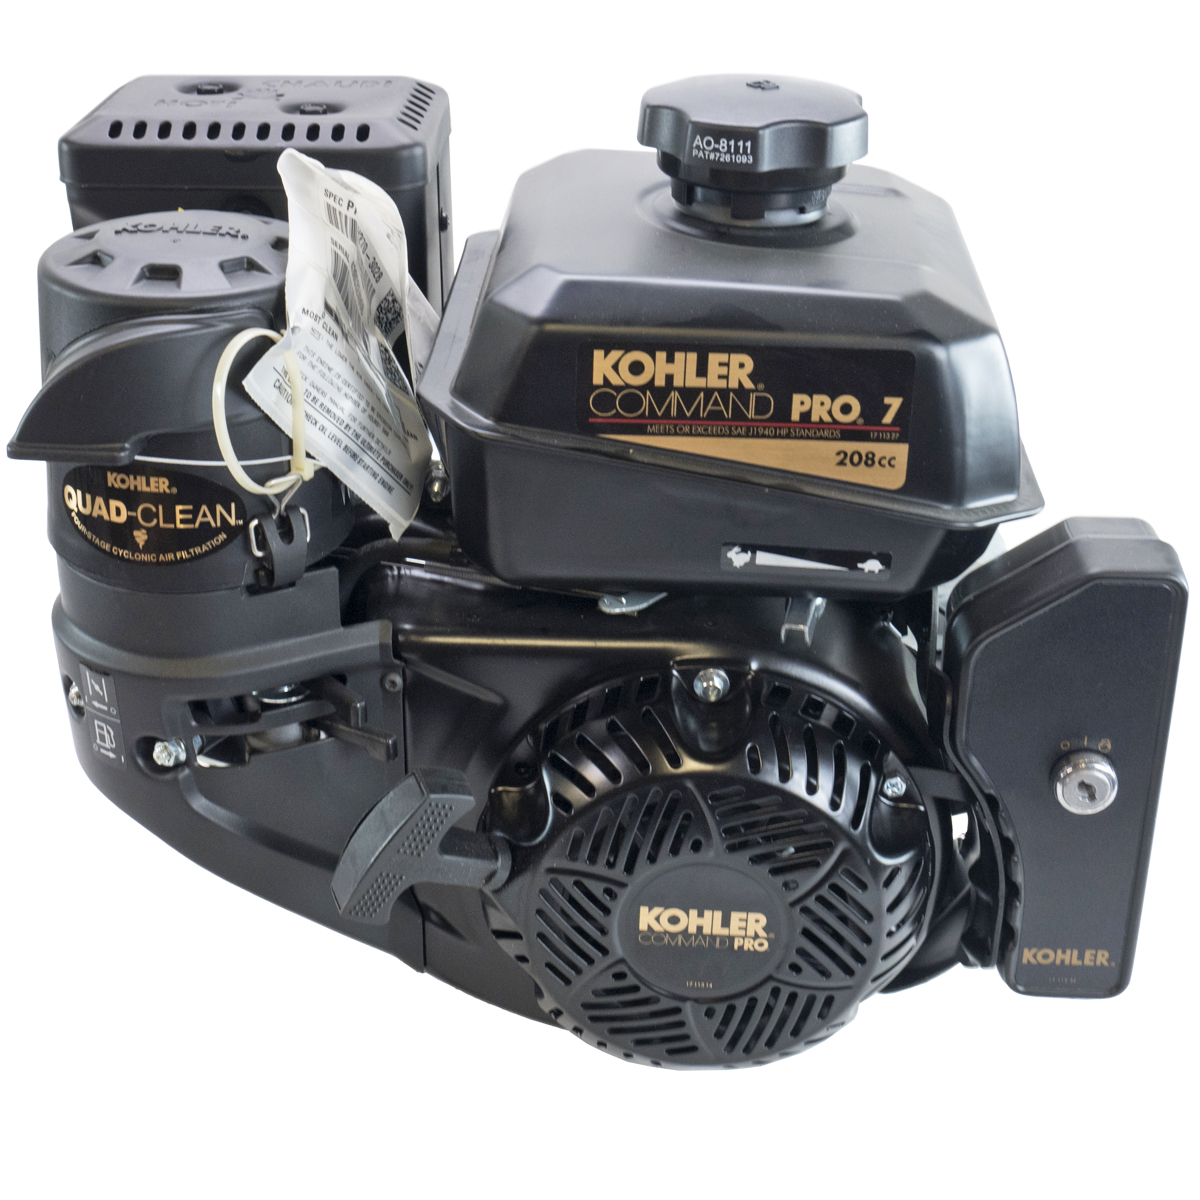 7HP Kohler Command Pro, 2:1 Wet Clutch Gear Reduction 22MM Keyed Shaft, Recoil and Electric Start,  CIS, OHV, Fuel Tank, Muffler, Kohler Engine, Kohler